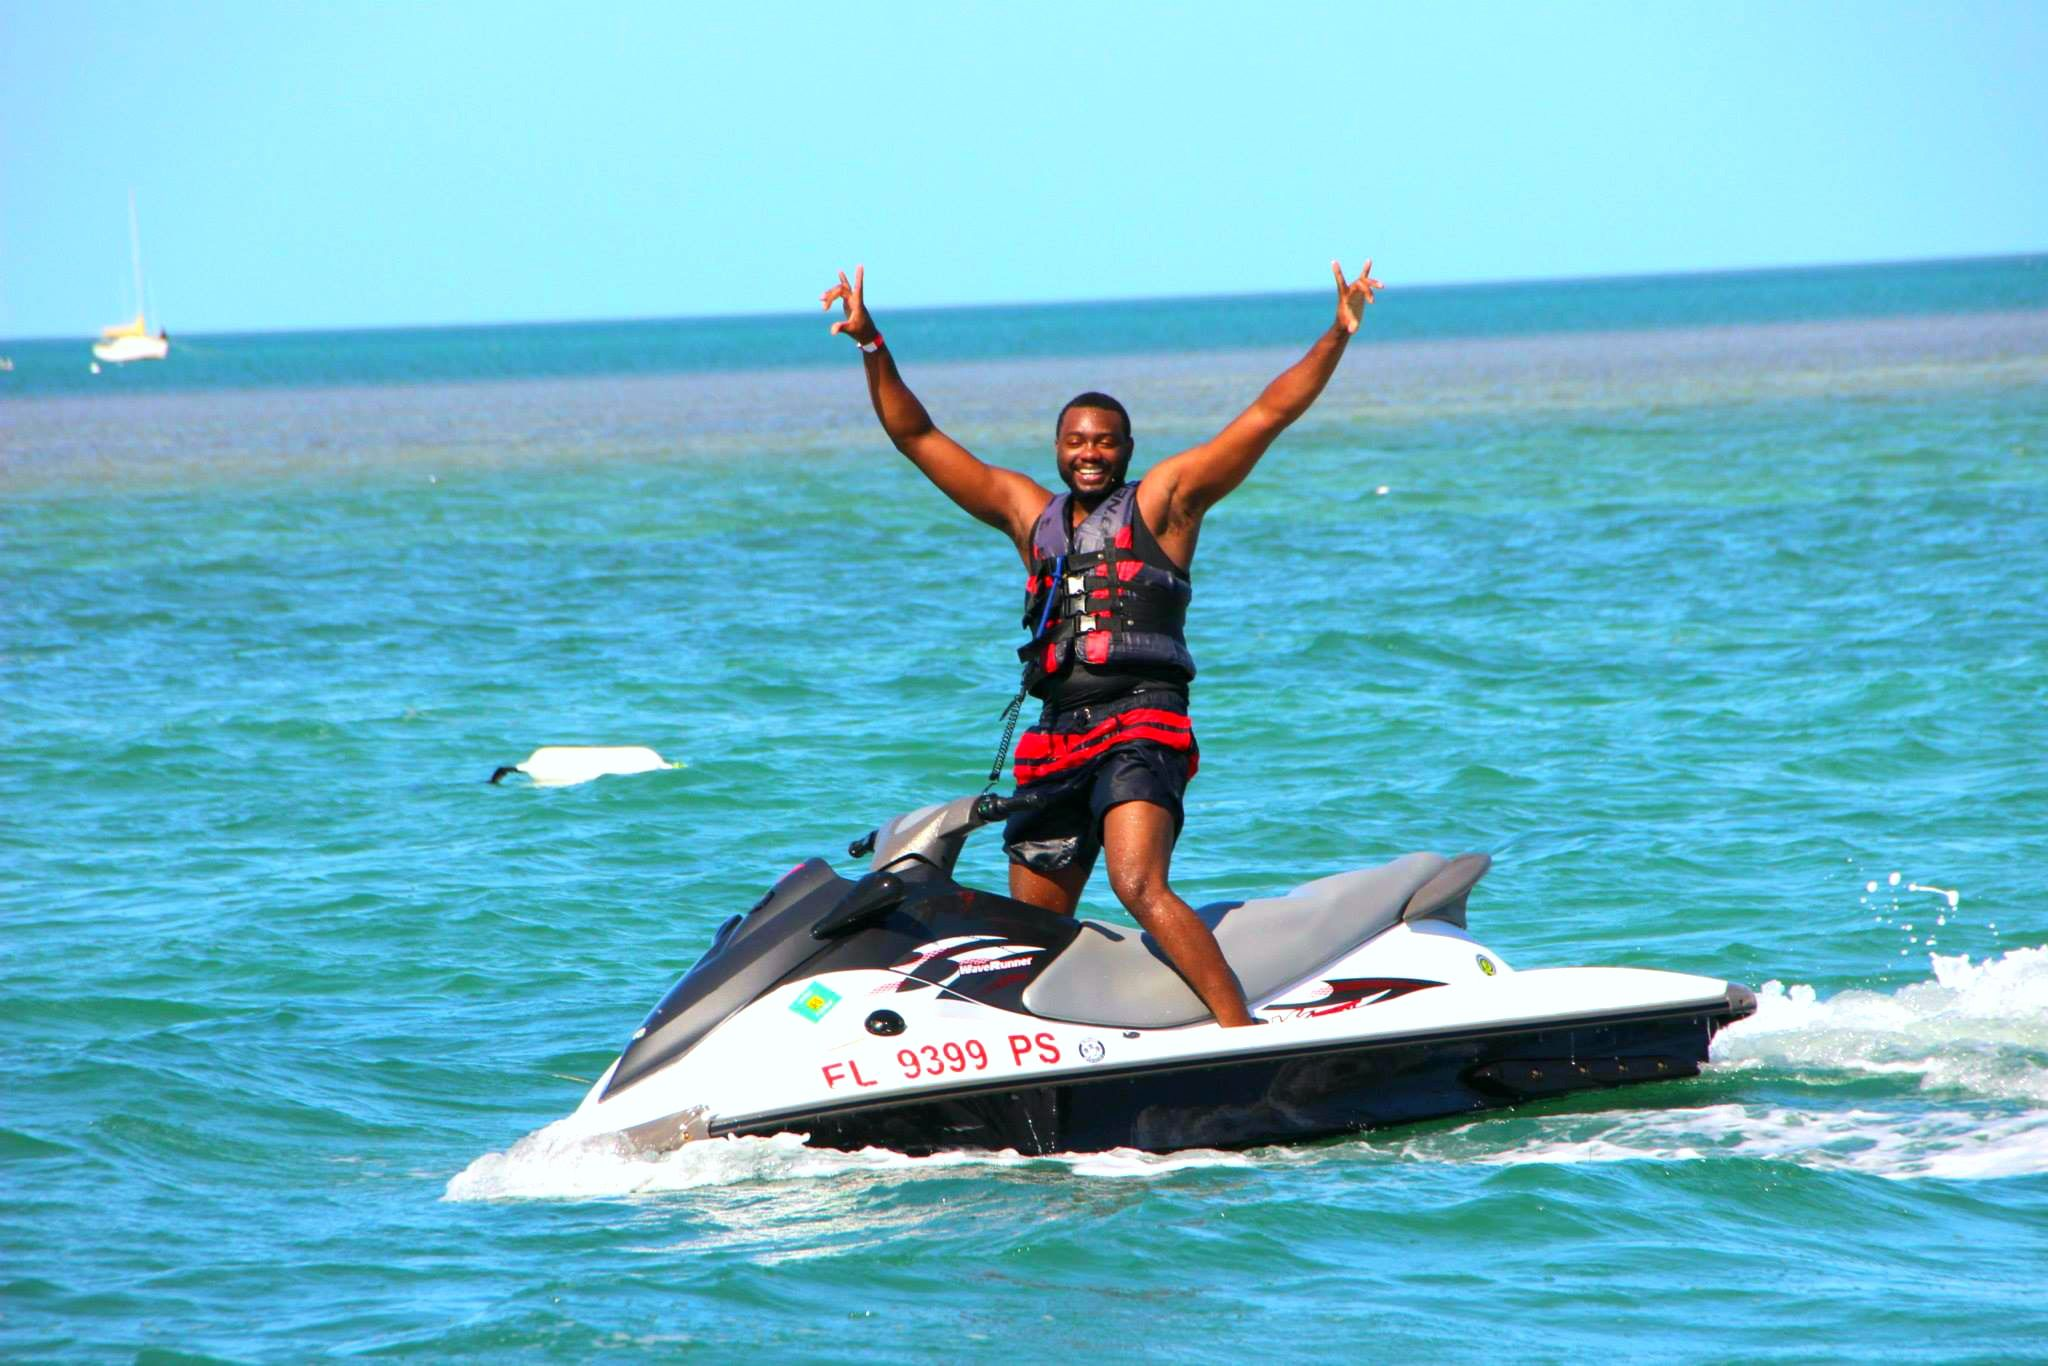 Cheers nothing better than a day spent on a jet ski in